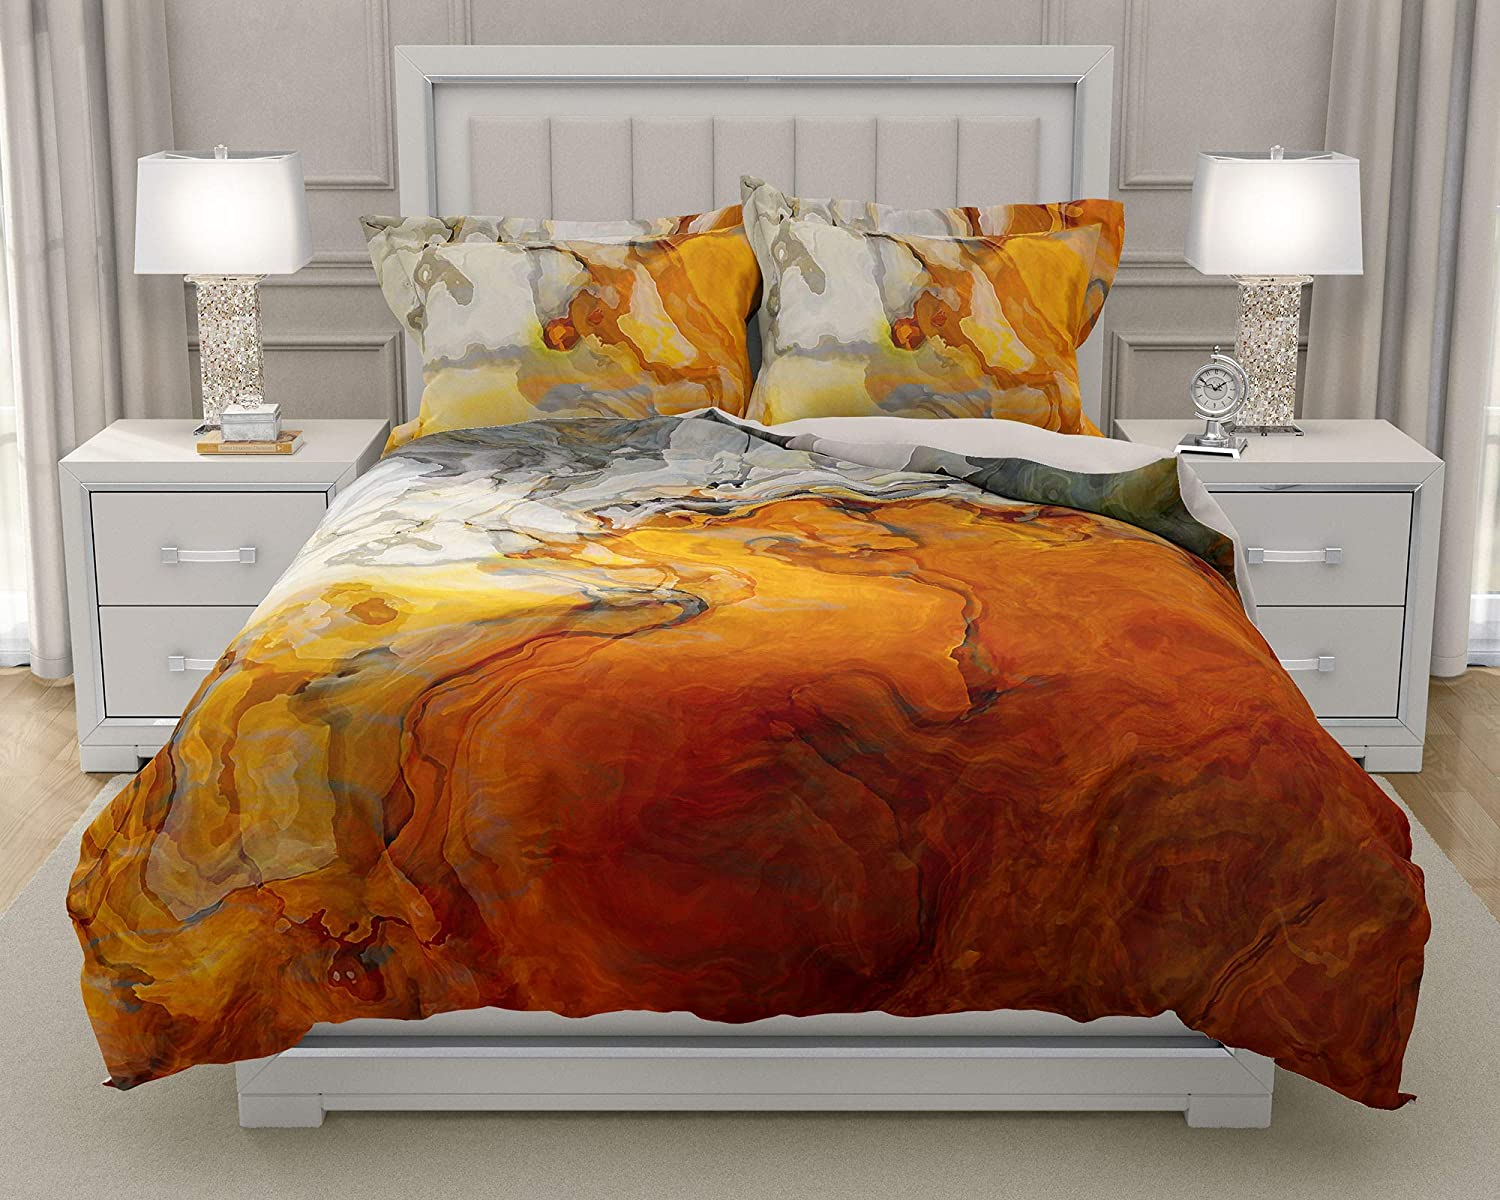 Image of King or Queen 3 pc Duvet Cover Set with abstract art, Baby Teeth